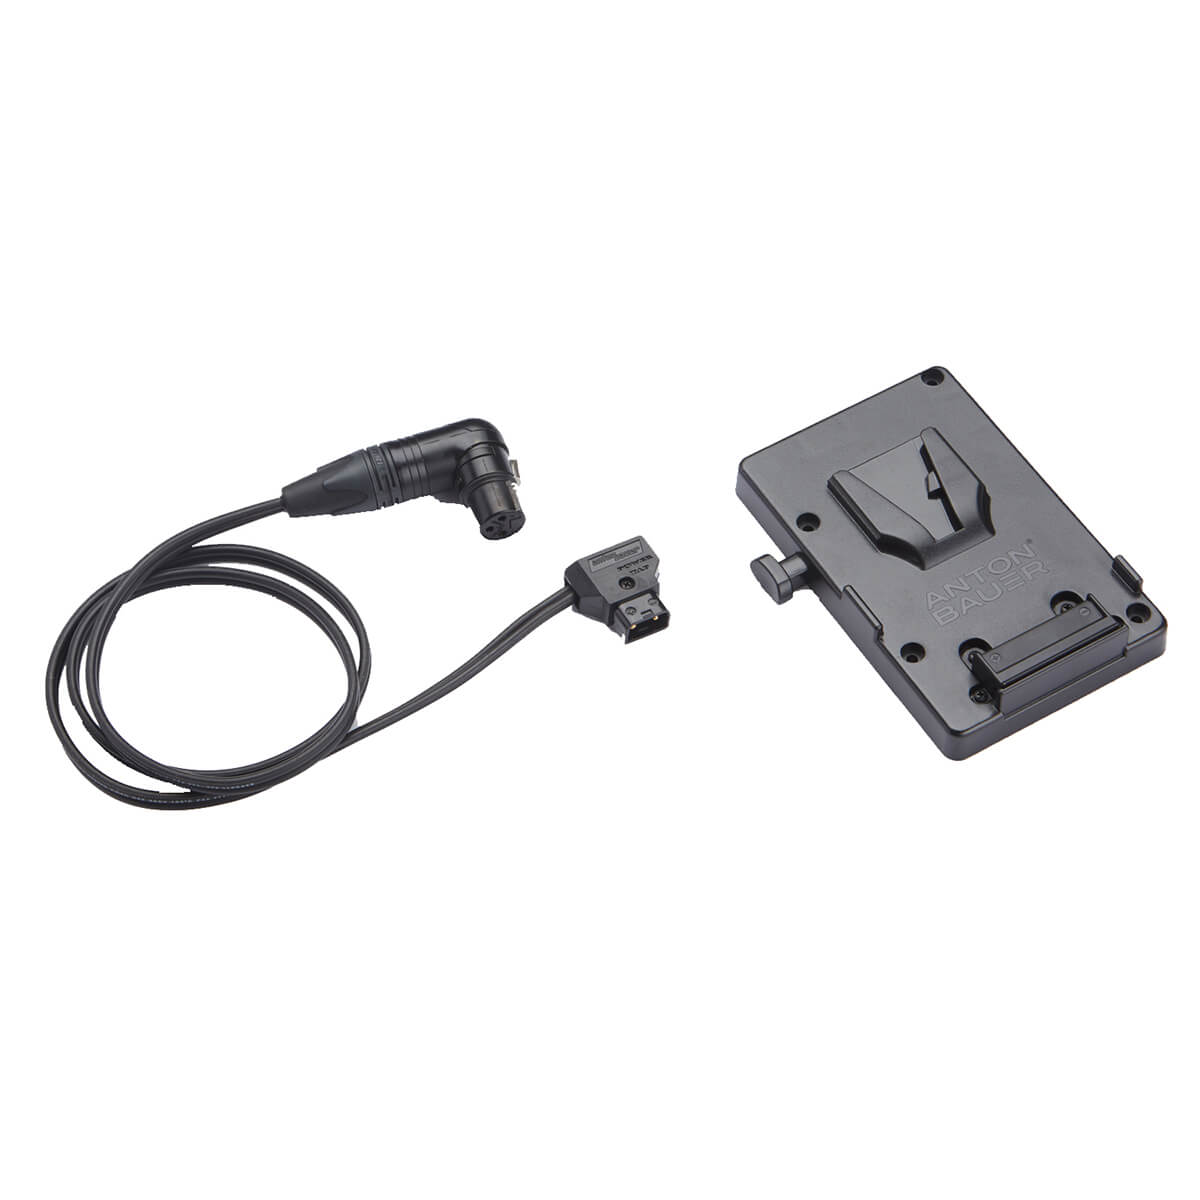 Litepanels V-Mount Battery Bracket for Astra 1x1 LED Panel